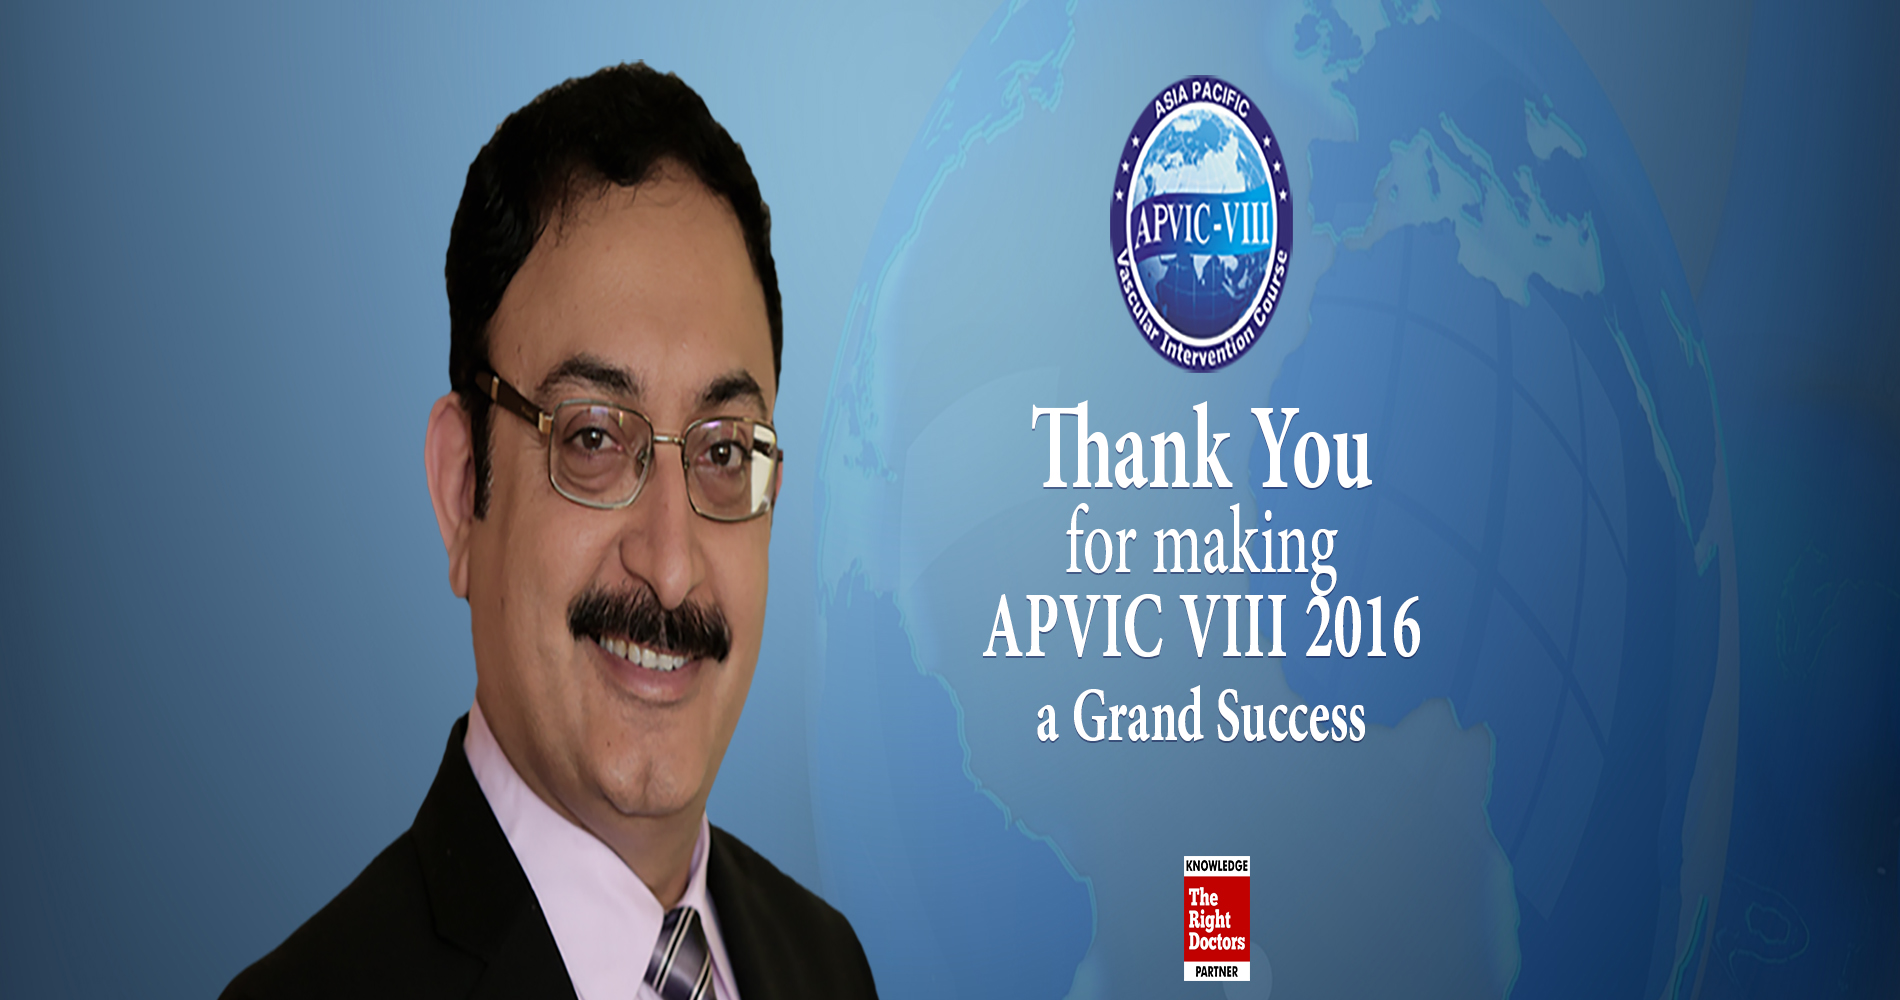 Asia Pacific Vascular Intervention Course 2016, Taj Palace, New Delhi